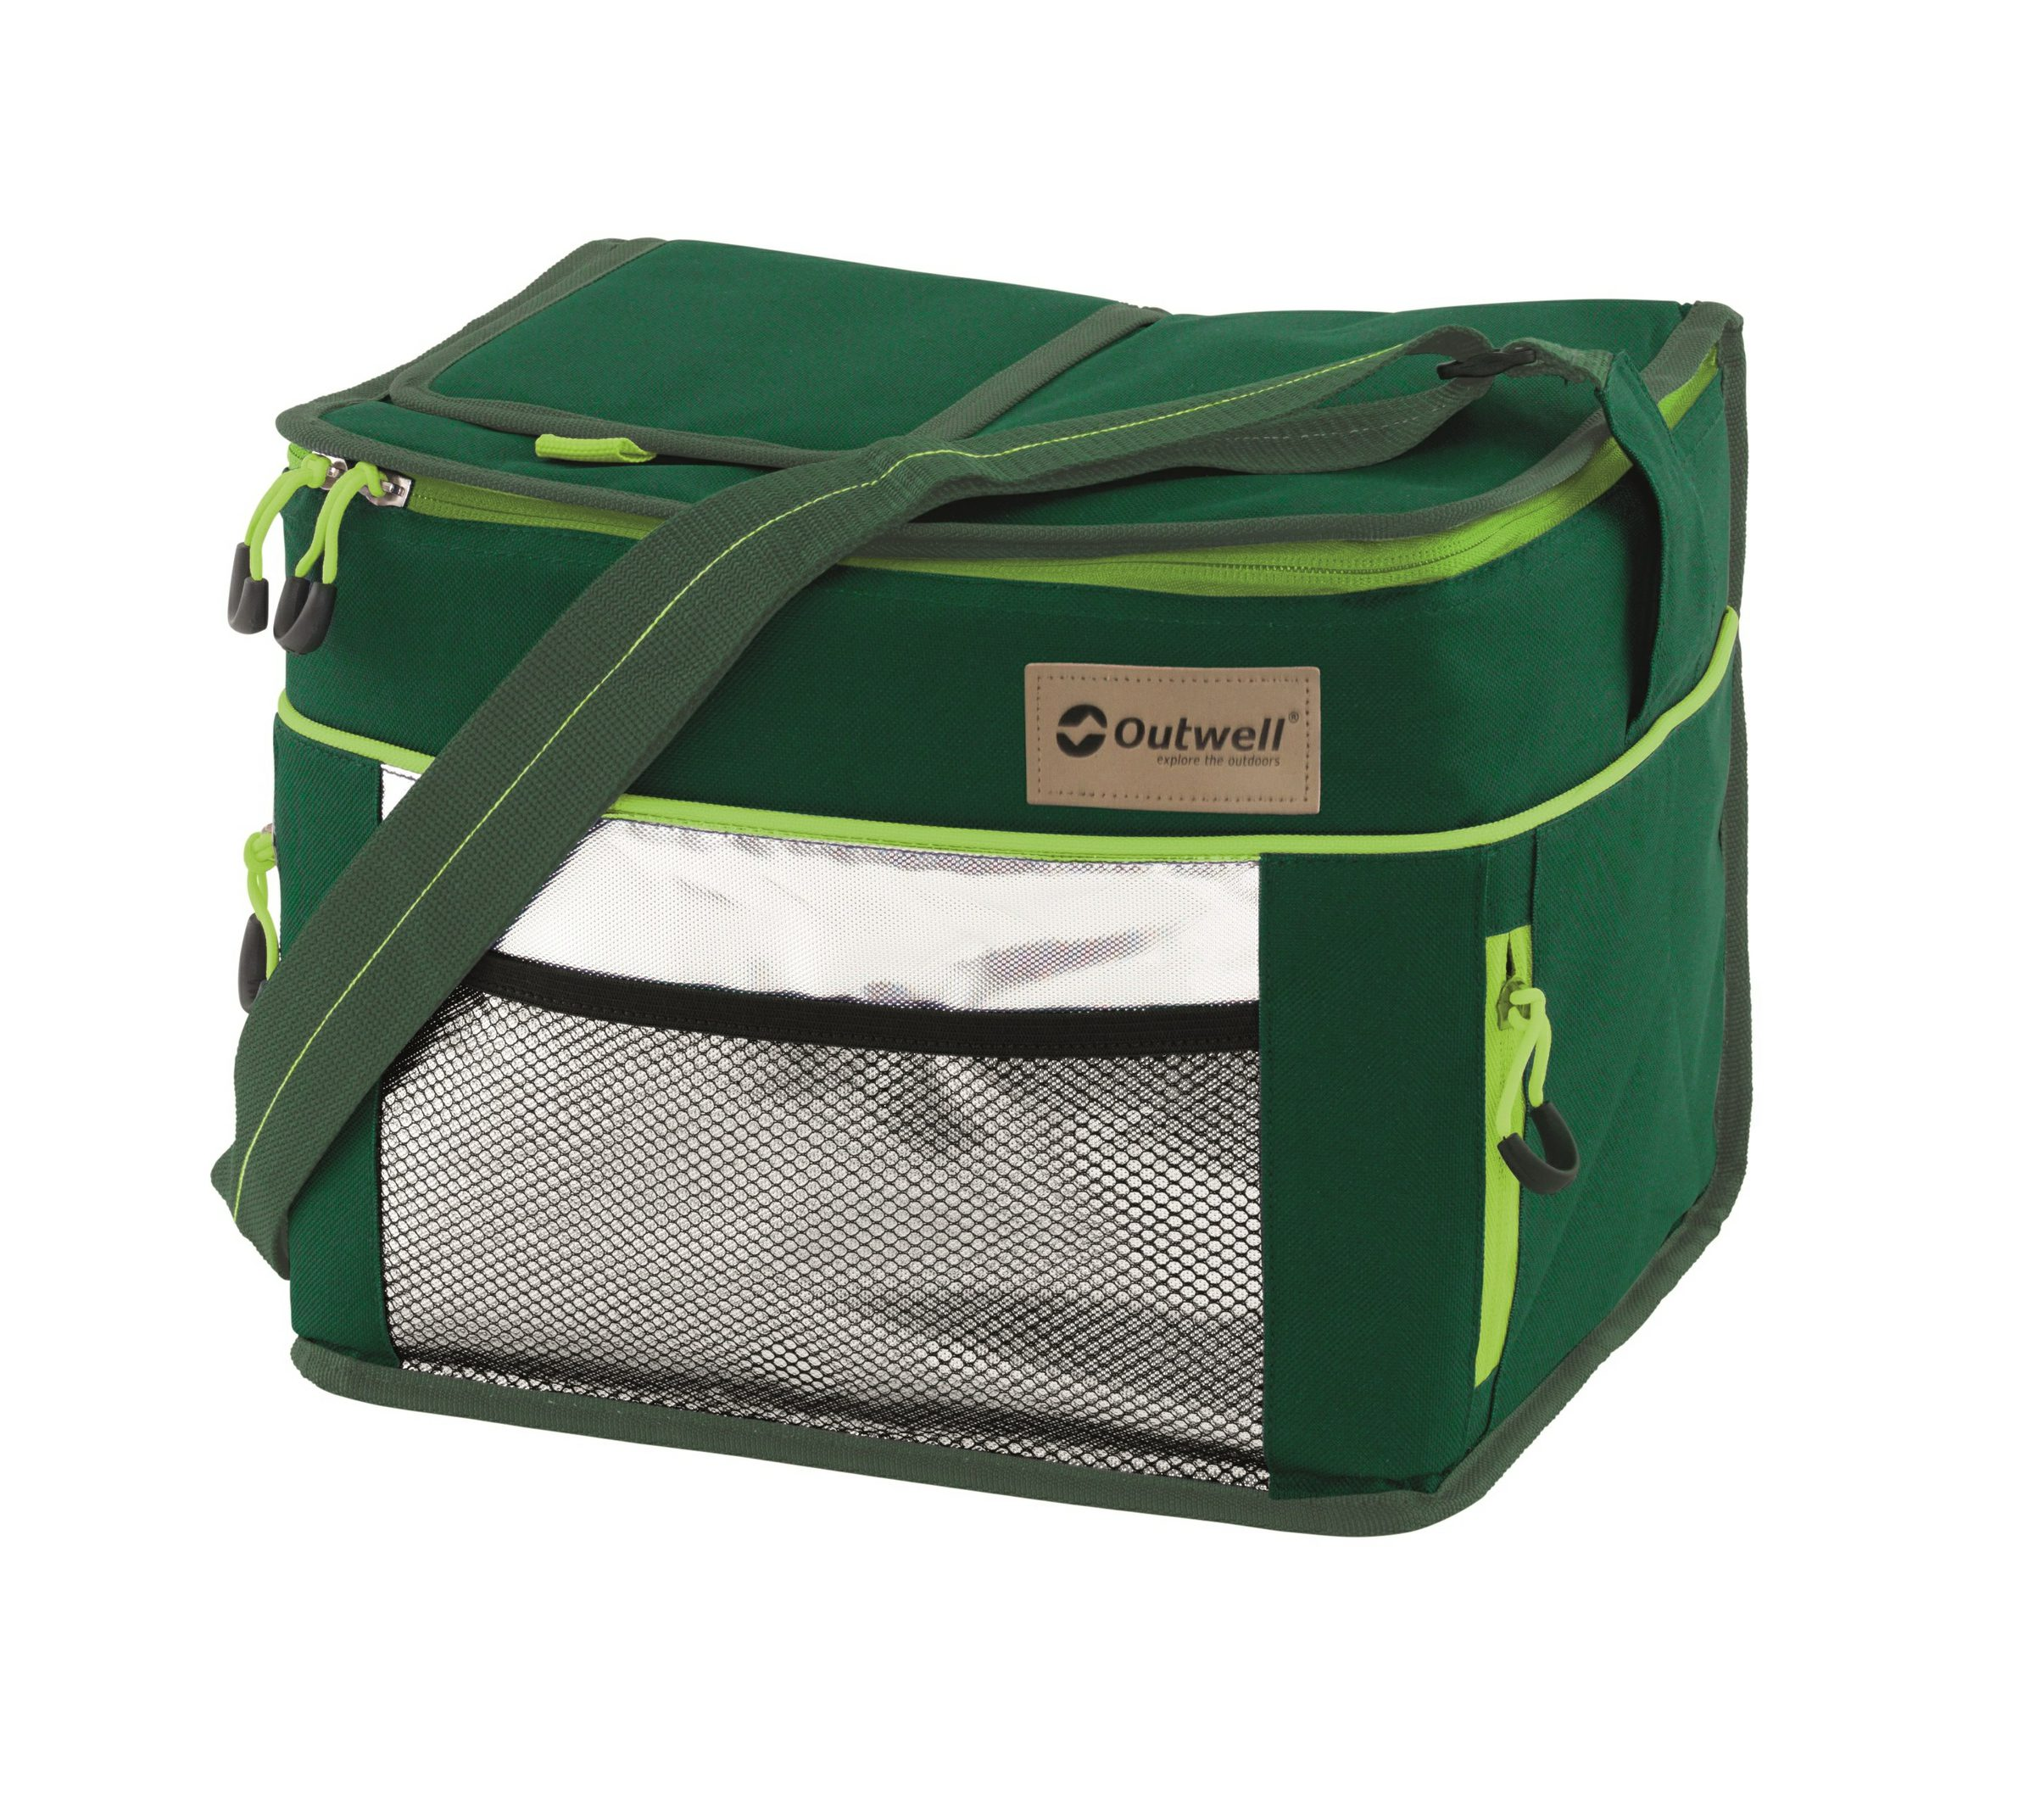 Outwell Shearwater S cool bag